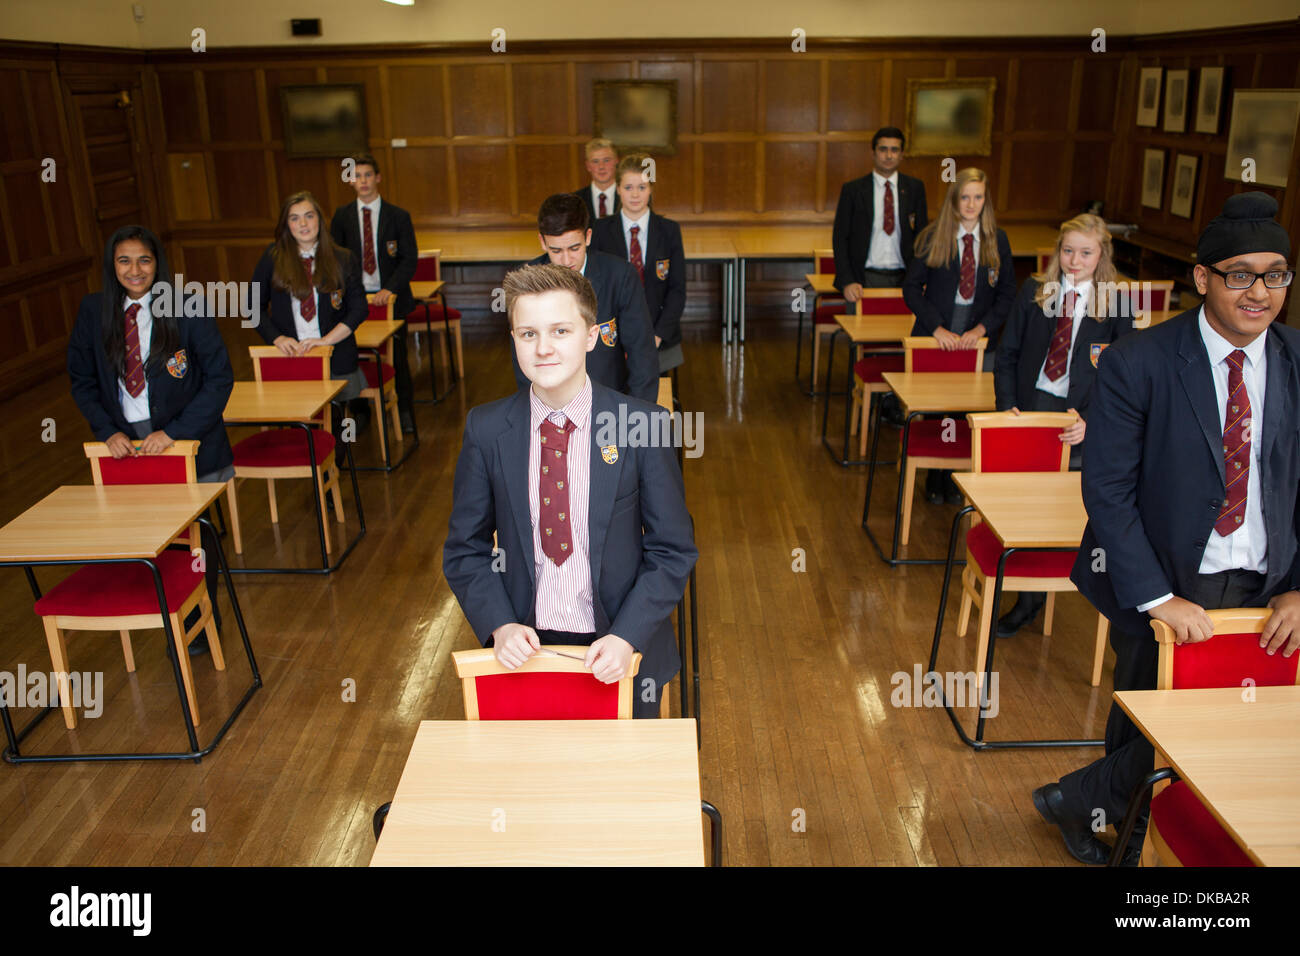 Teenage schoolchildren standing in exam class - Stock Image